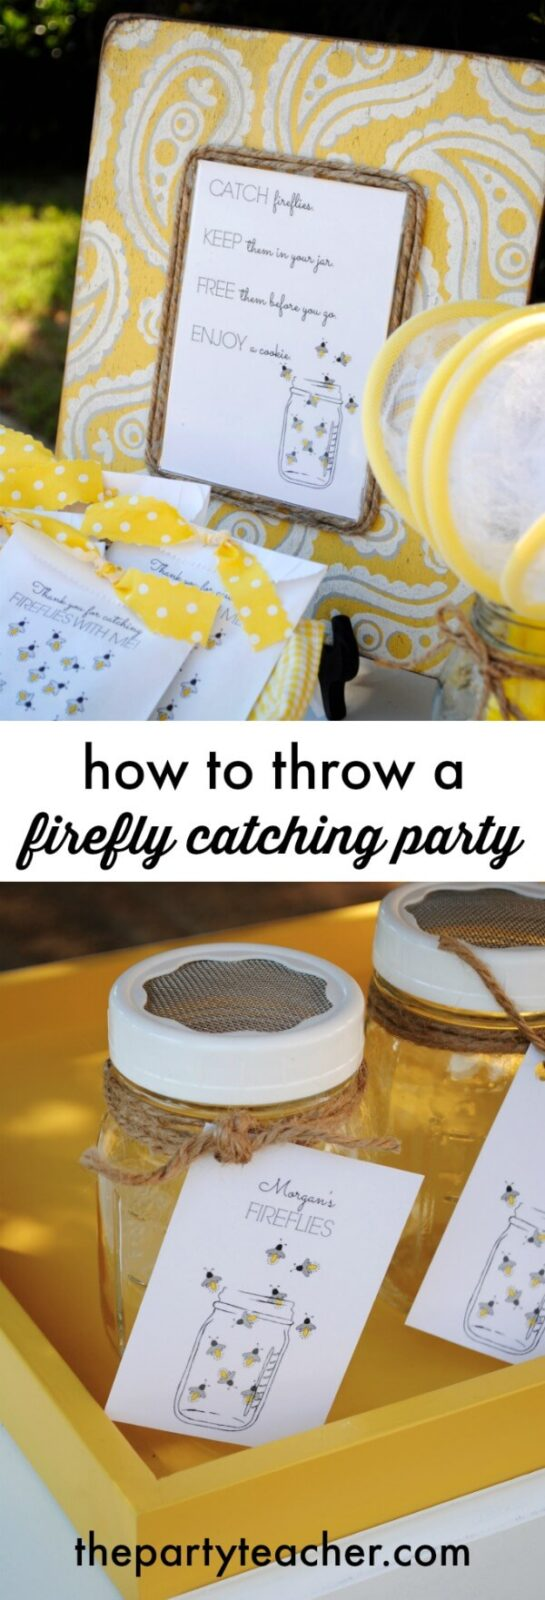 How to throw a firefly catching party by The Party Teacher